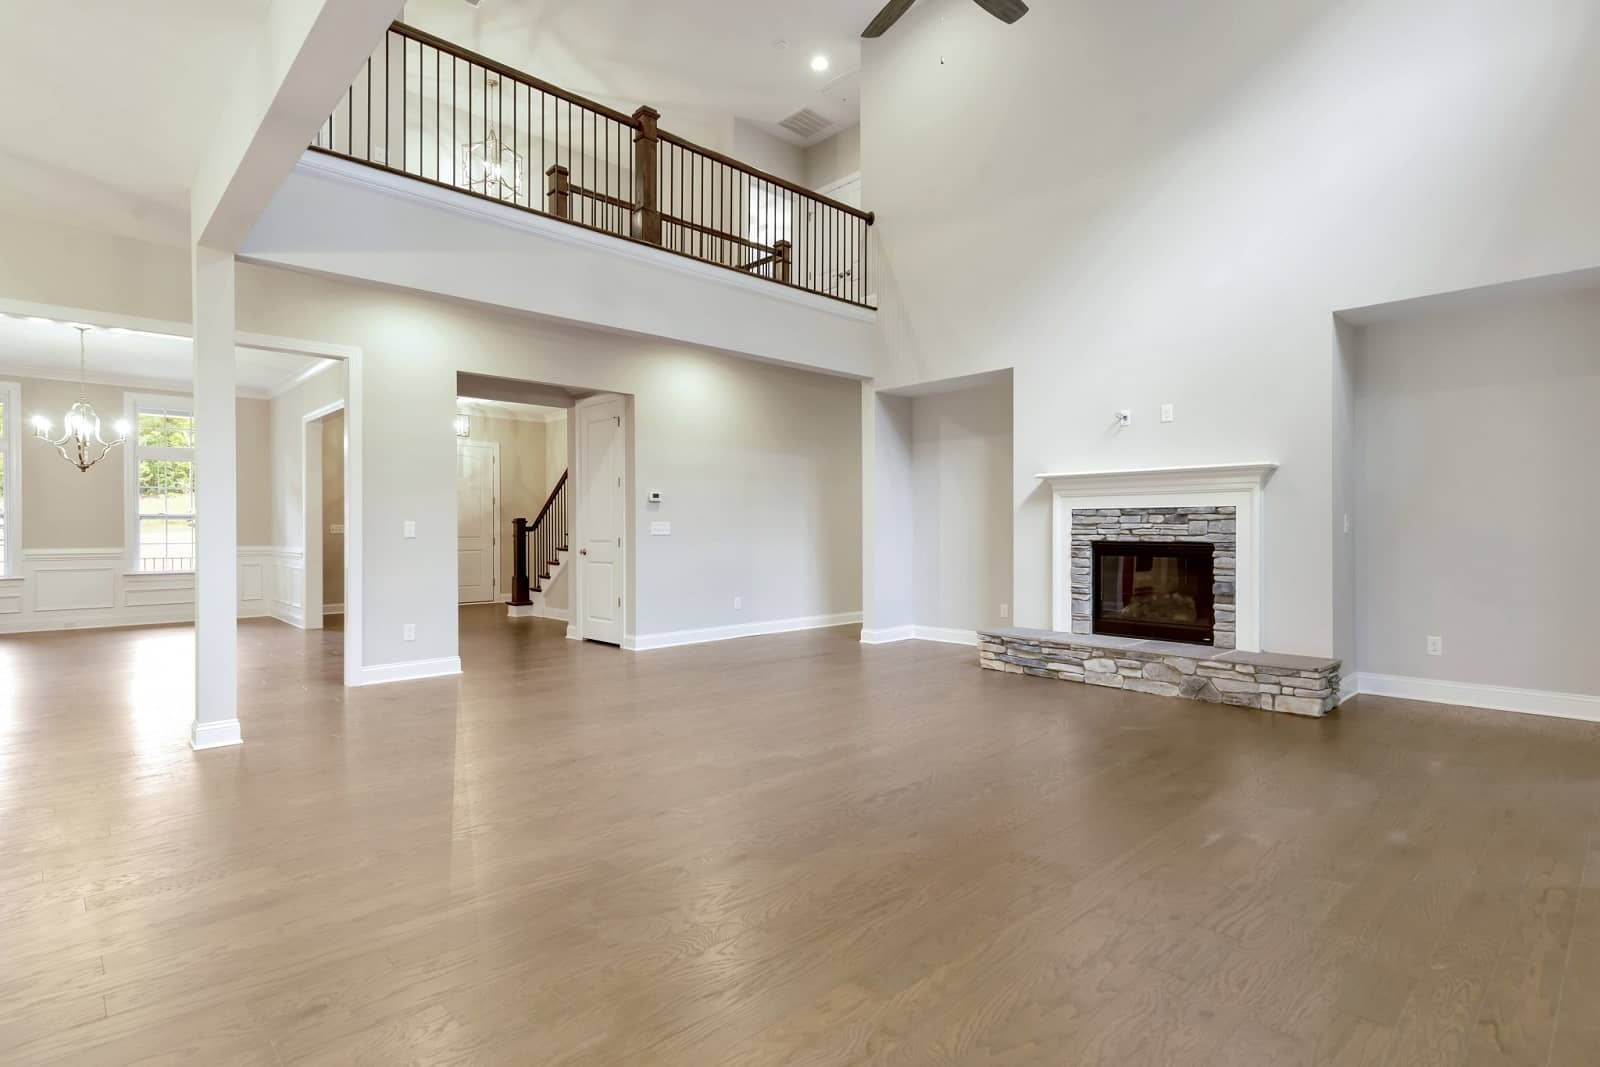 Real Estate Photography in Rock Hill - NC - USA - Living Area View